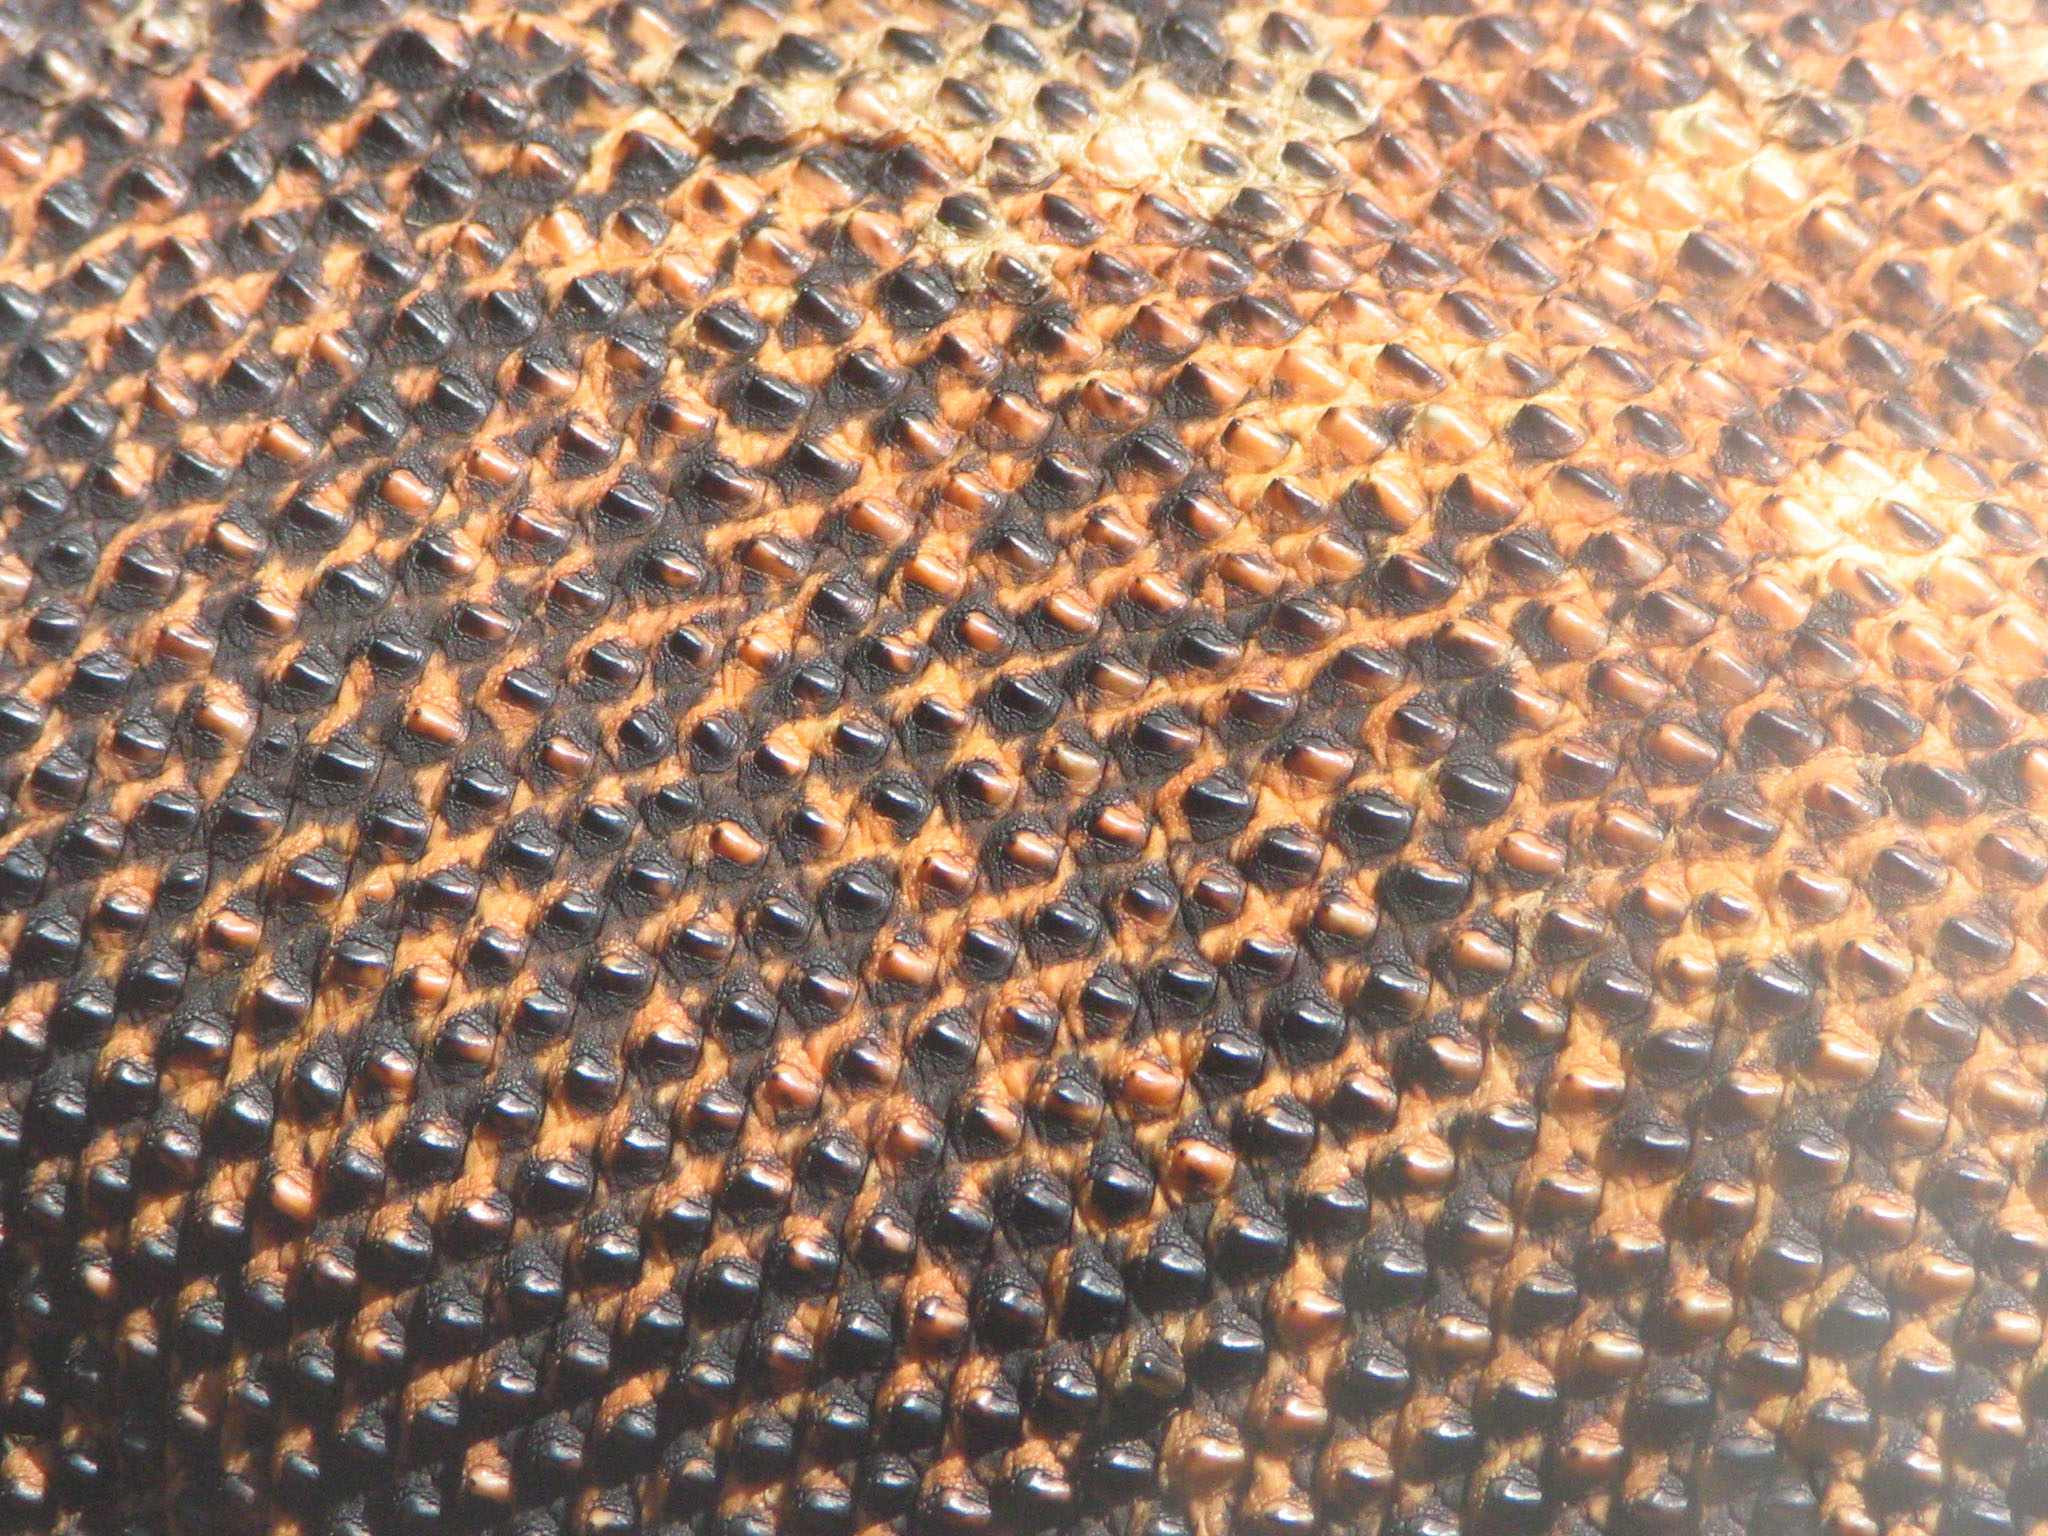 http://upload.wikimedia.org/wikipedia/commons/b/b5/Komodo_dragon_skin.jpg